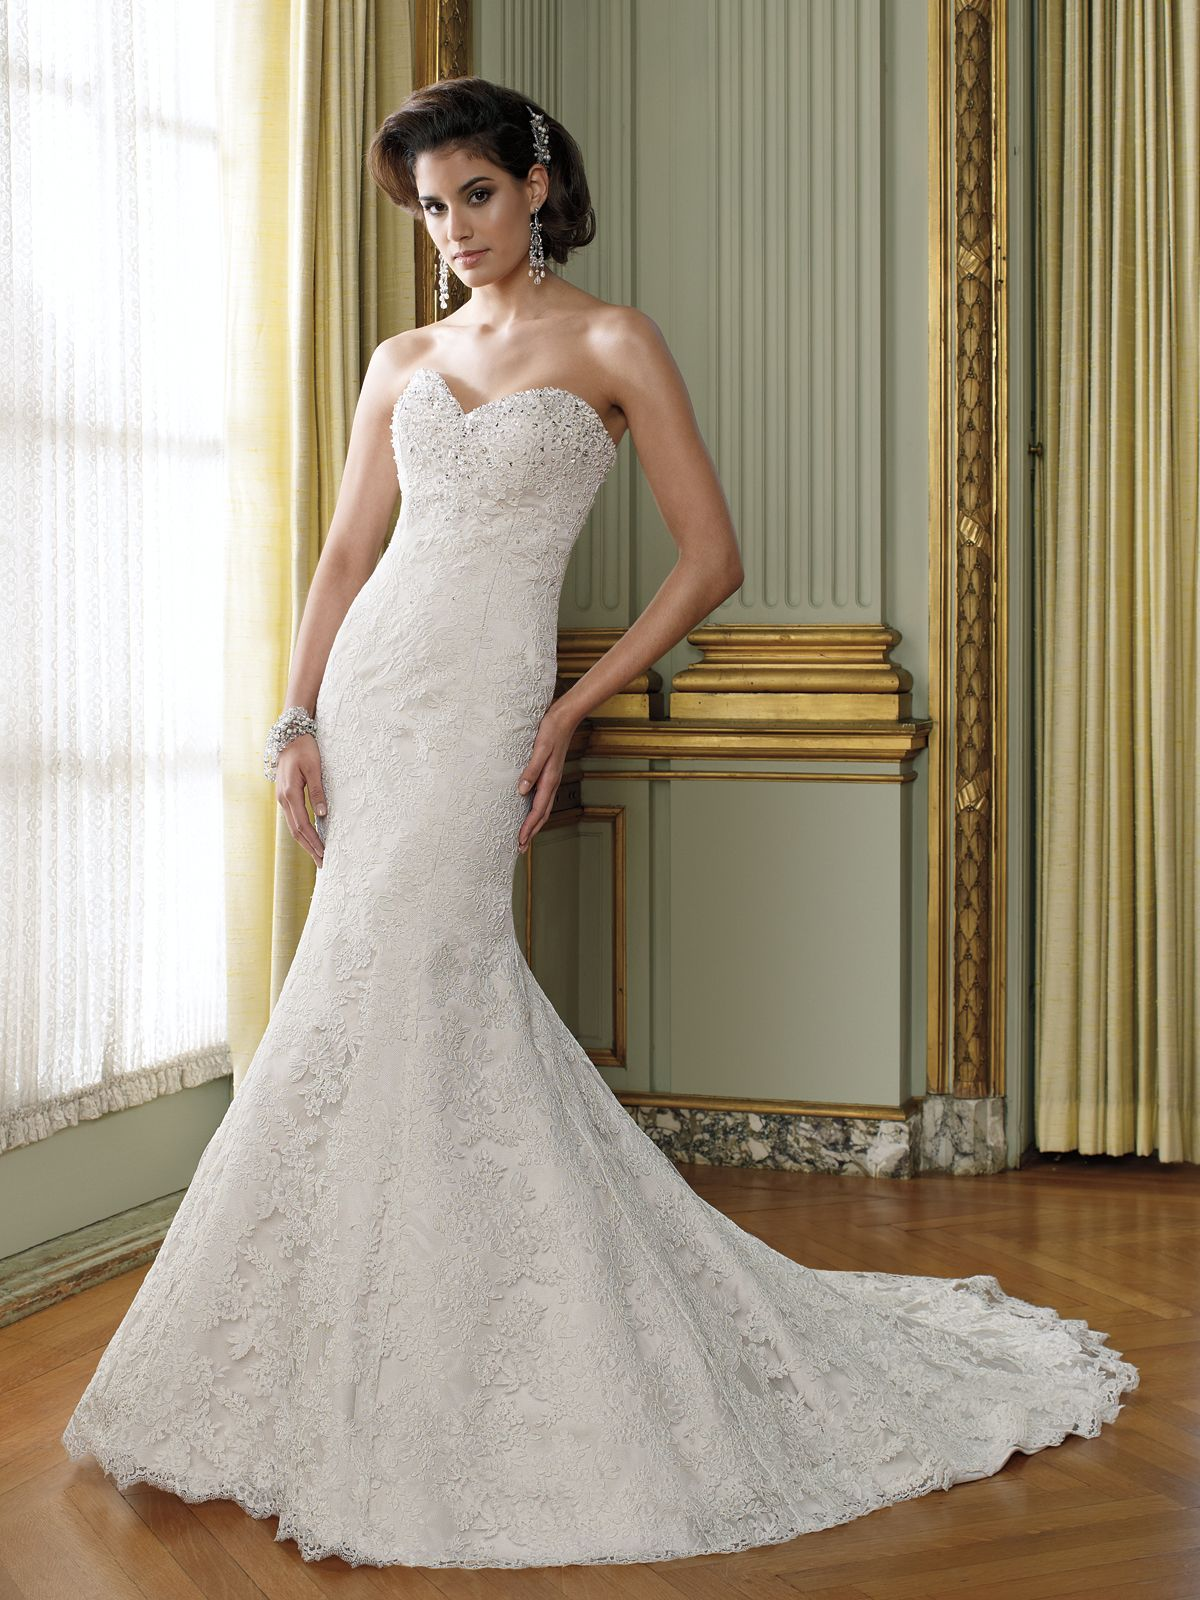 Wedding dresses and bridals gowns by David Tutera | Fairytale ...